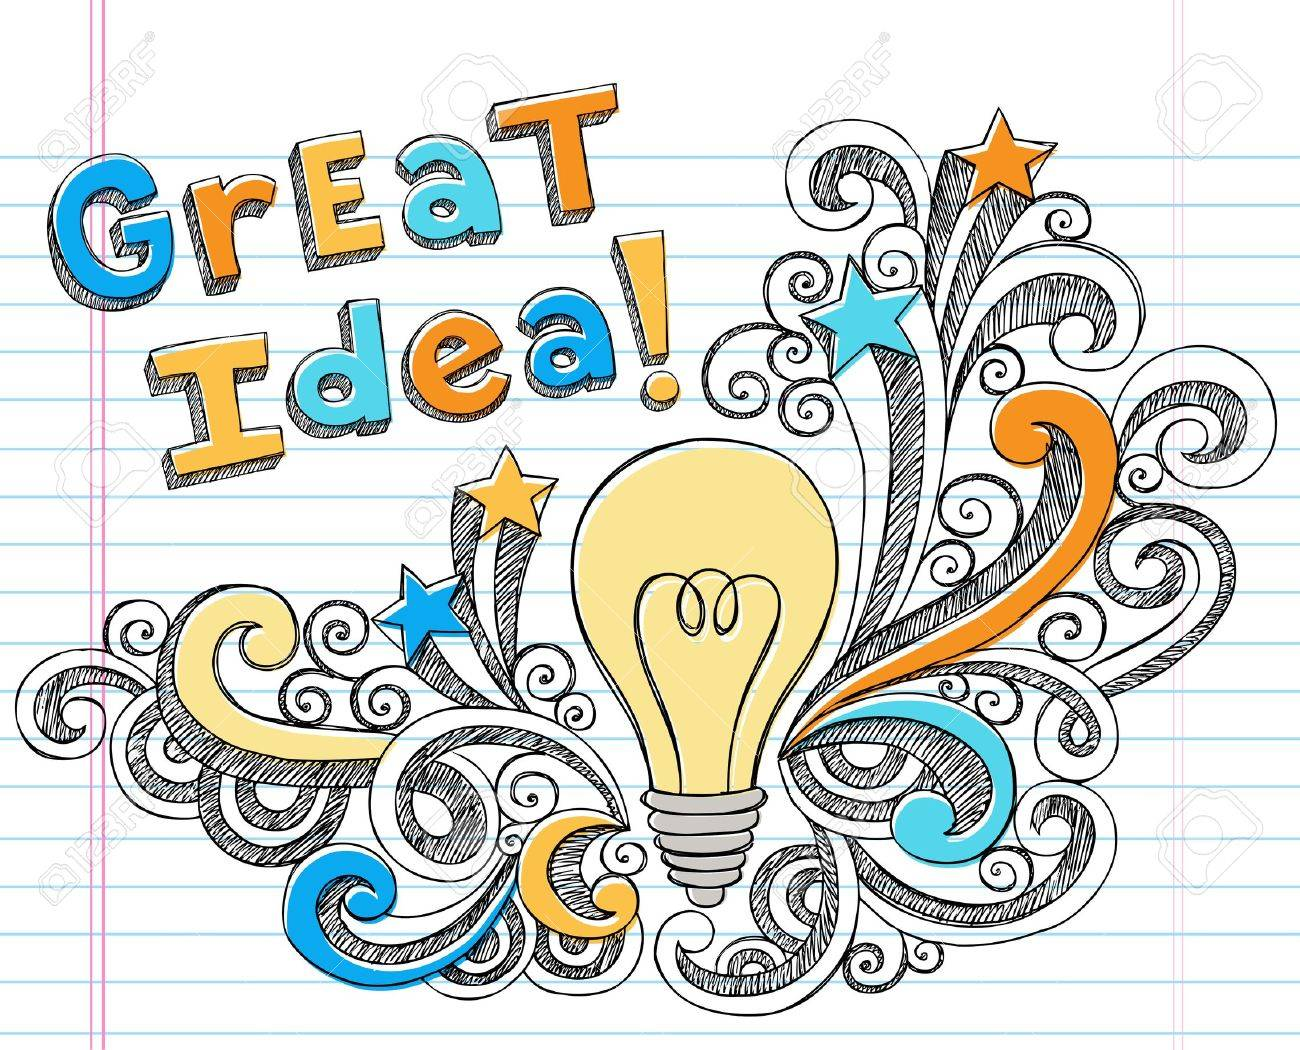 Great Idea Lettering with Lightbulb Hand-Drawn Back to School Starbursts and Swirls Sketchy Notebook Doodles Illustration Design Elements on Lined Sketchbook Paper Background - 10598806